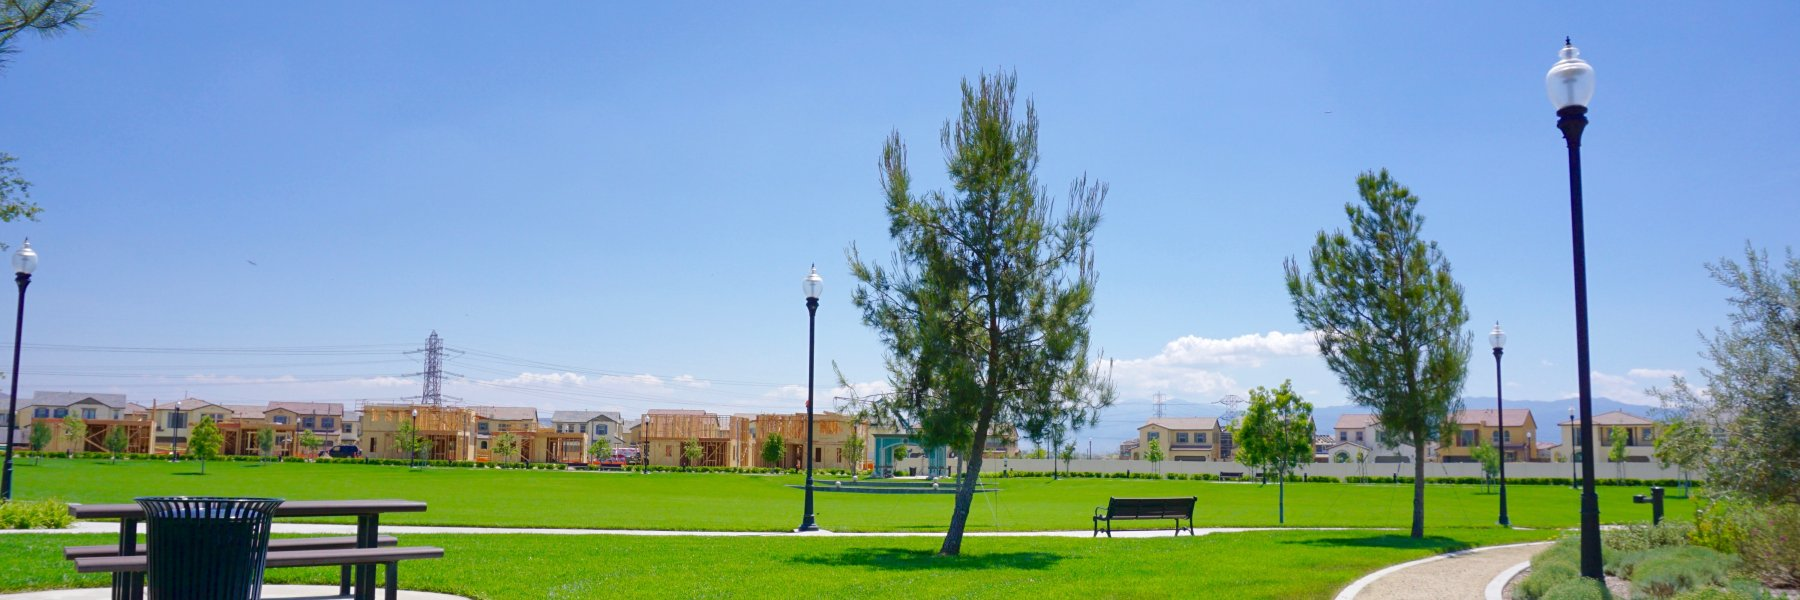 Park Place is a community of homes in Ontario California